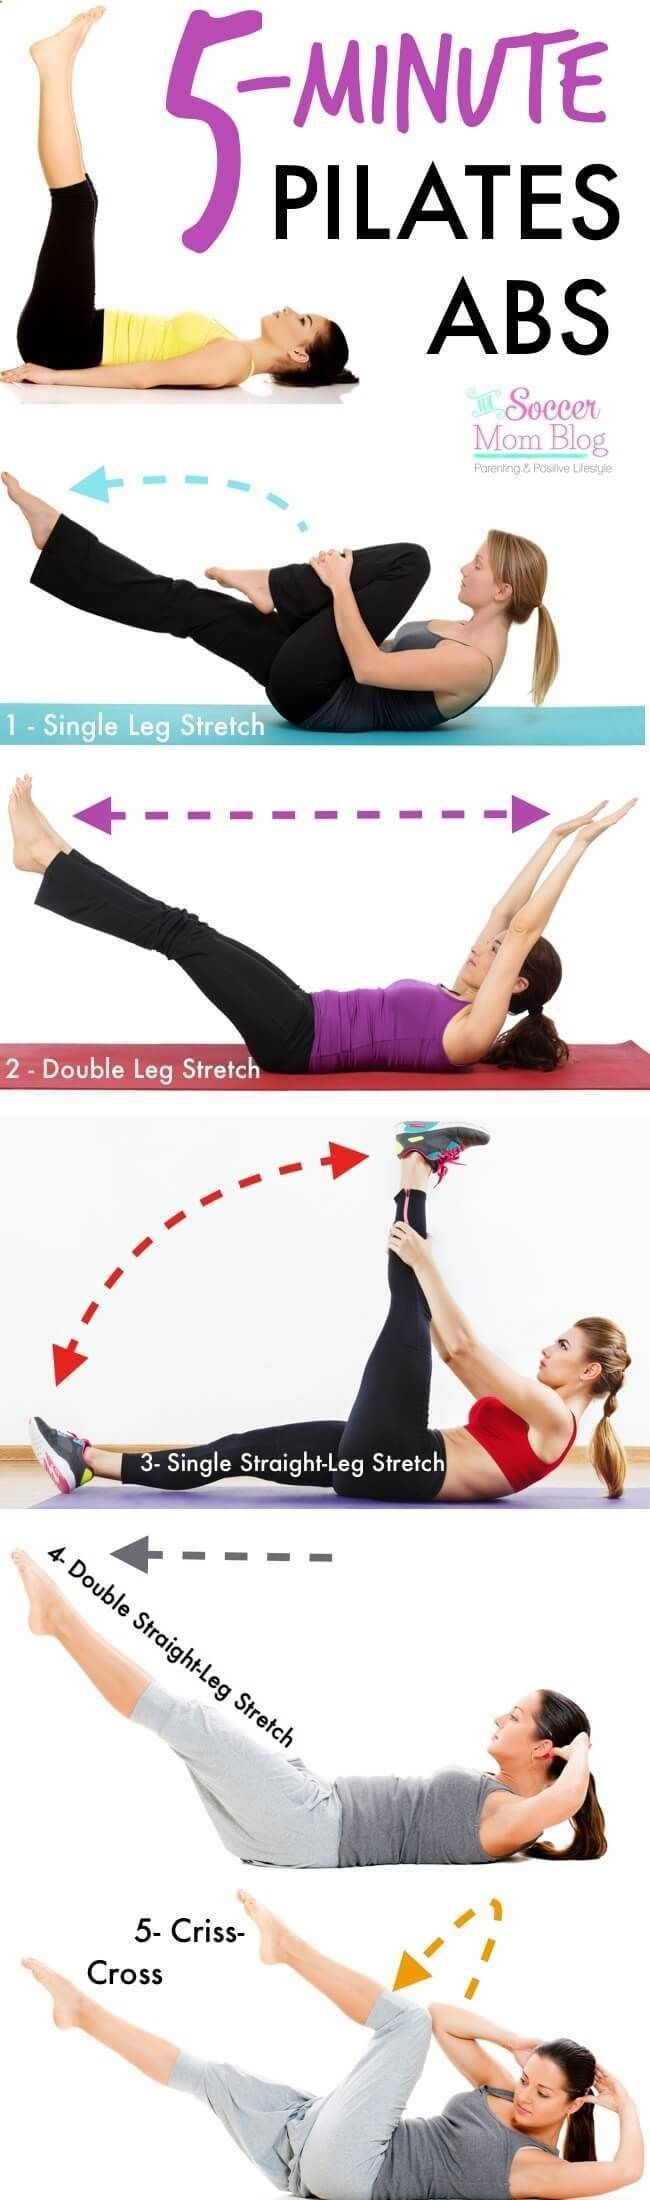 Excersices For Legs At Home and At The Gym - Looking for a flat tummy workout? Try these abs workouts for toned and flat belly! These quick workouts take 5 minutes of your time and you can do them daily, whenever you have the time. This amazing list includes 5-minute ab workouts for flat belly, 5-minute butt workouts, 5-minute leg workouts and inner thigh workouts and 5-minute arm workouts. Most of these exercises require almost no equipment. Some of them - just a pair of dumbbells and...